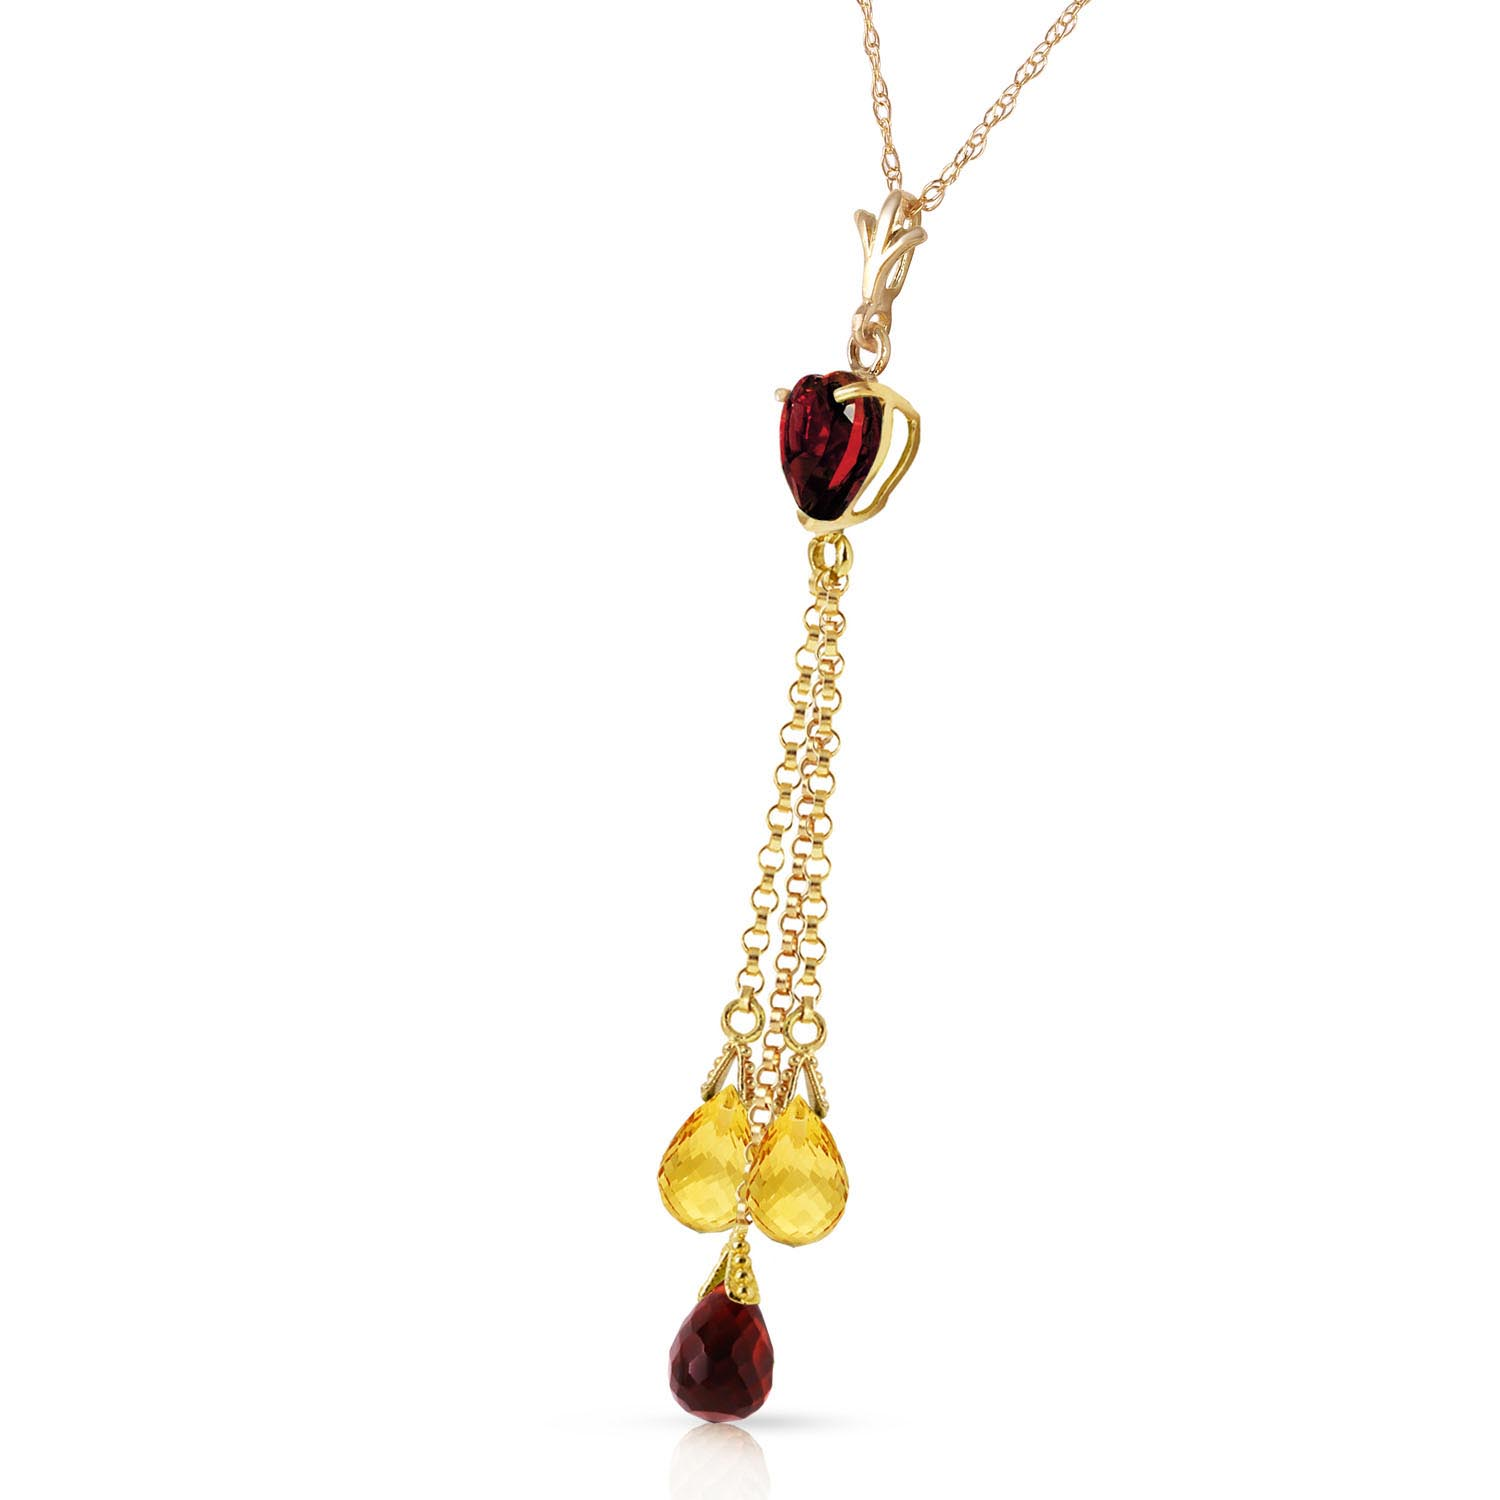 Garnet & Citrine Comet Tail Pendant Necklace in 9ct Gold